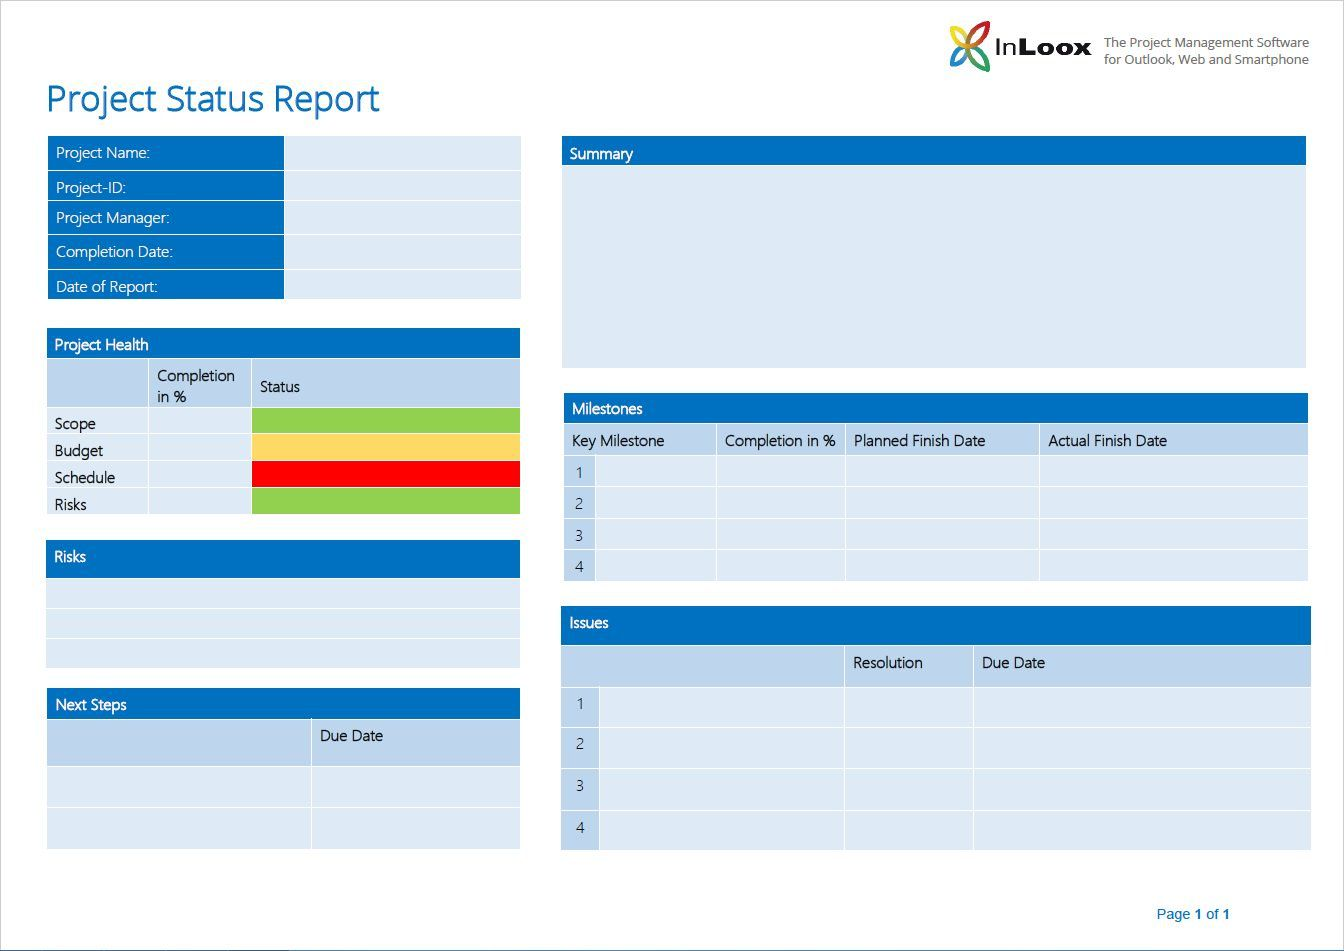 007 Staggering Project Management Statu Report Example Image  Template Word Agile ProgresFull